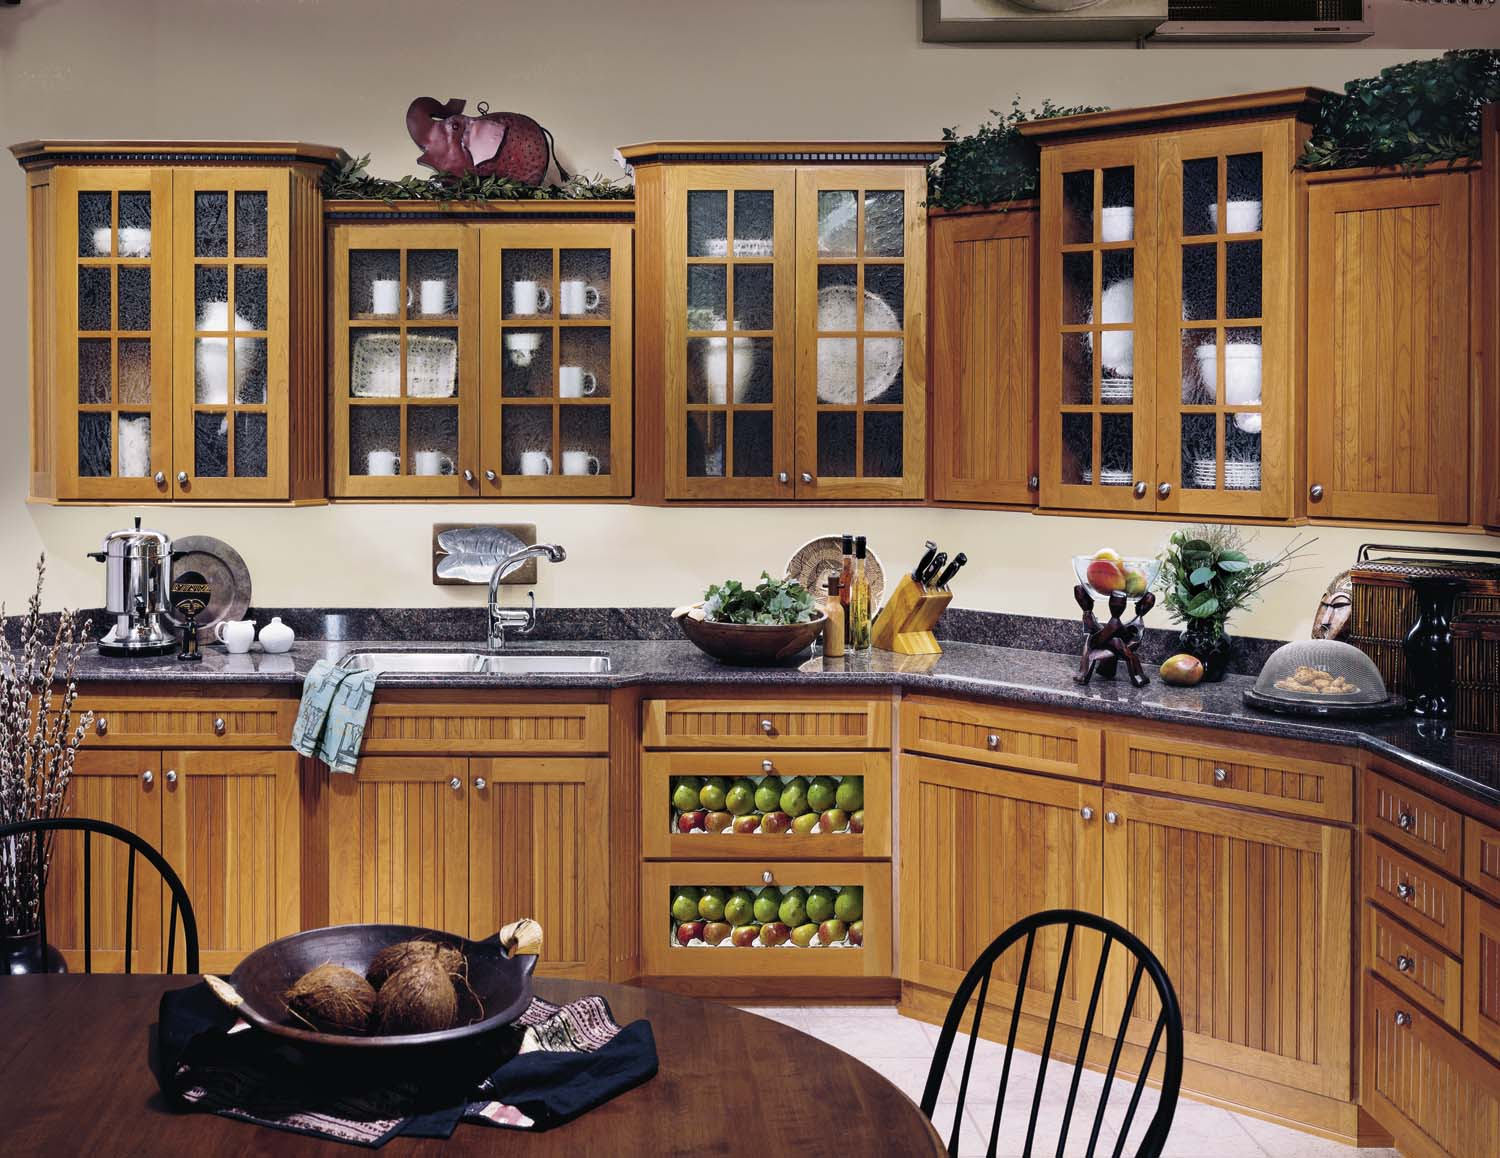 1000 options in kitchen cabinets how to choose best for for Kitchen cabinets styles